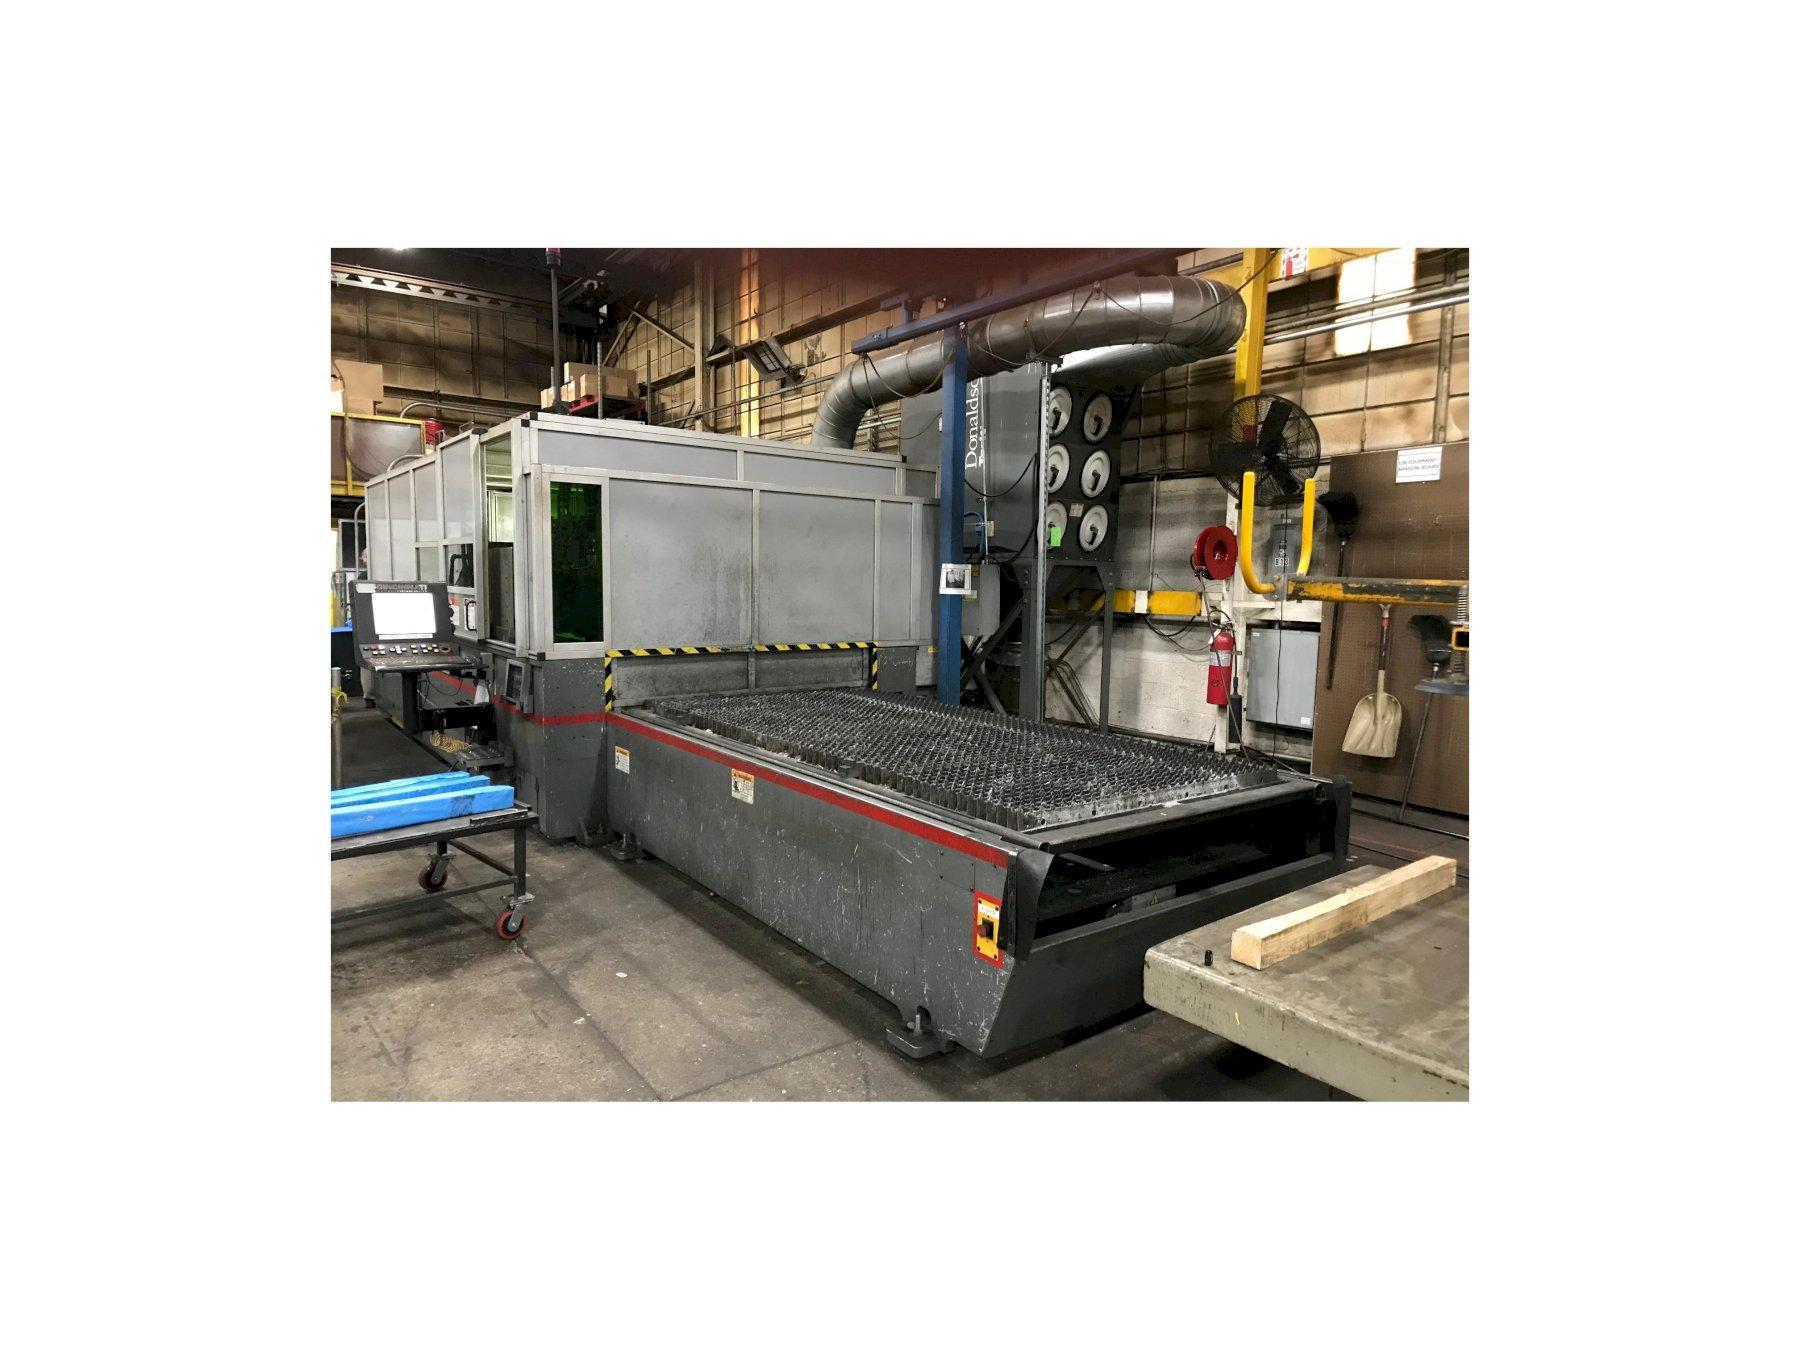 USED CINCINNATI 5' X 10' CNC FIBER LASER CUTTING SYSTEM MODEL CL940, Year: 2012, Stock # 10720